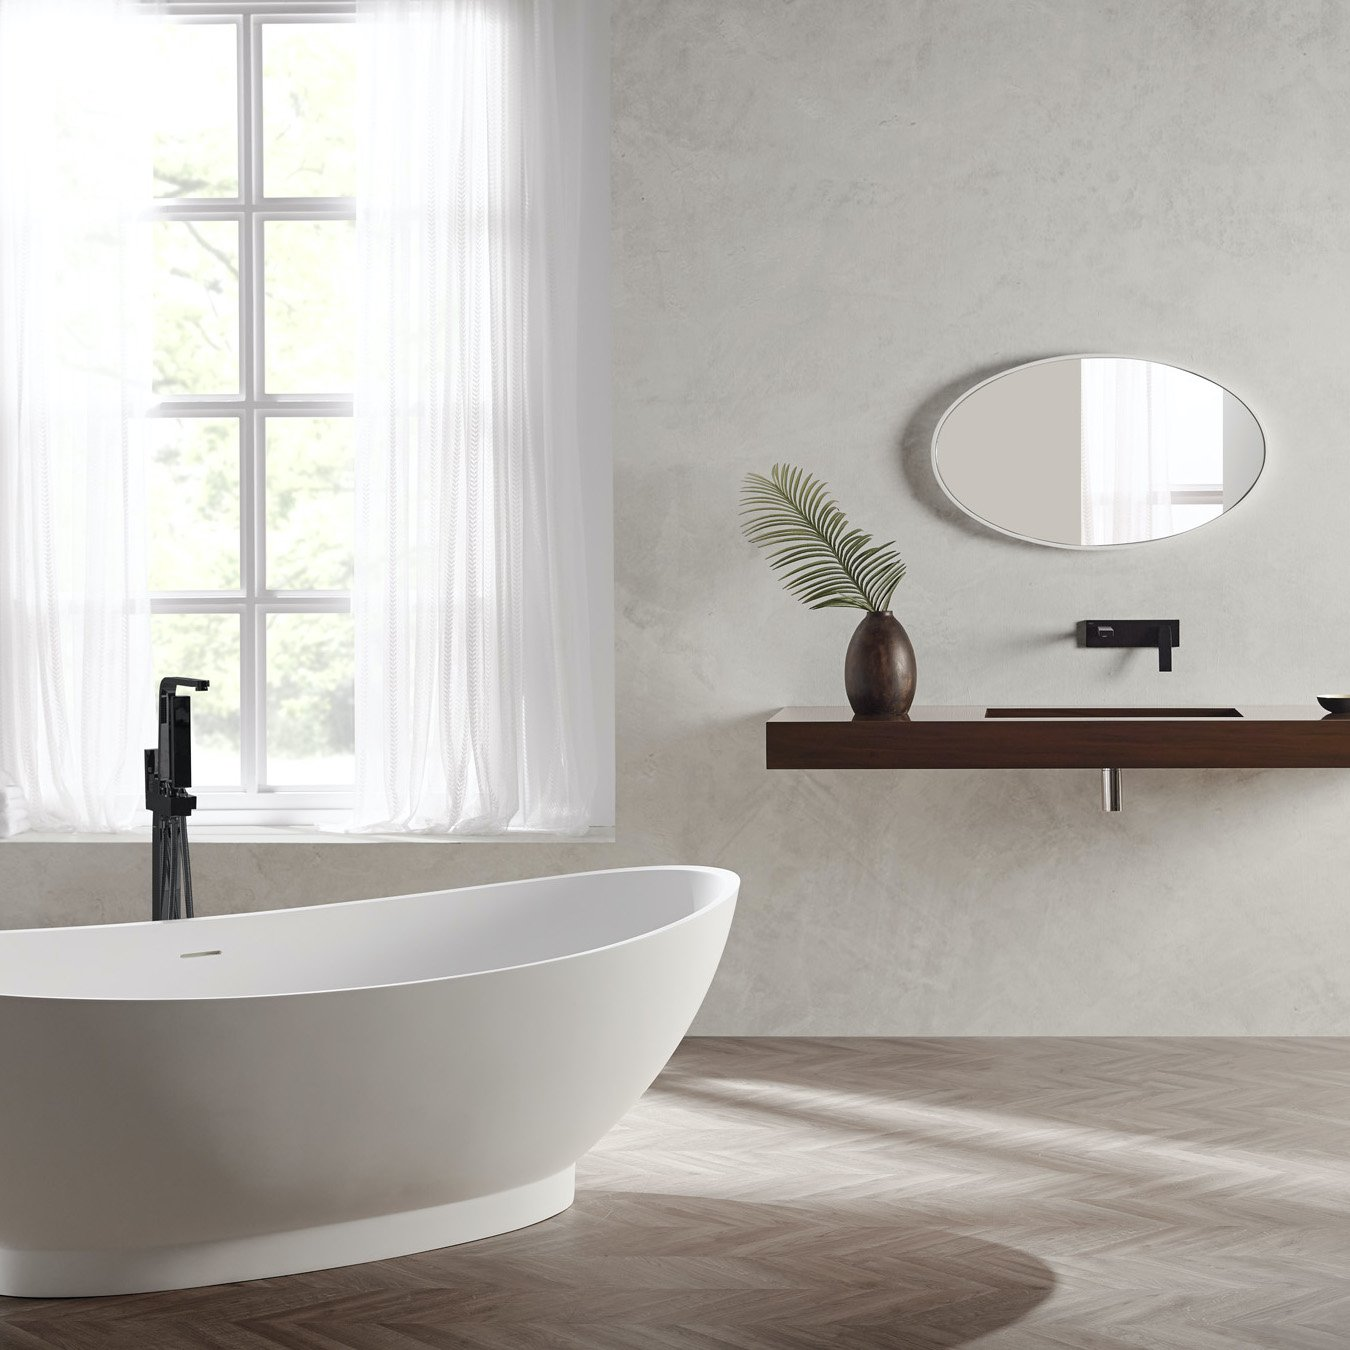 Our Top Products for a Luxury Spring Bathroom Remodel